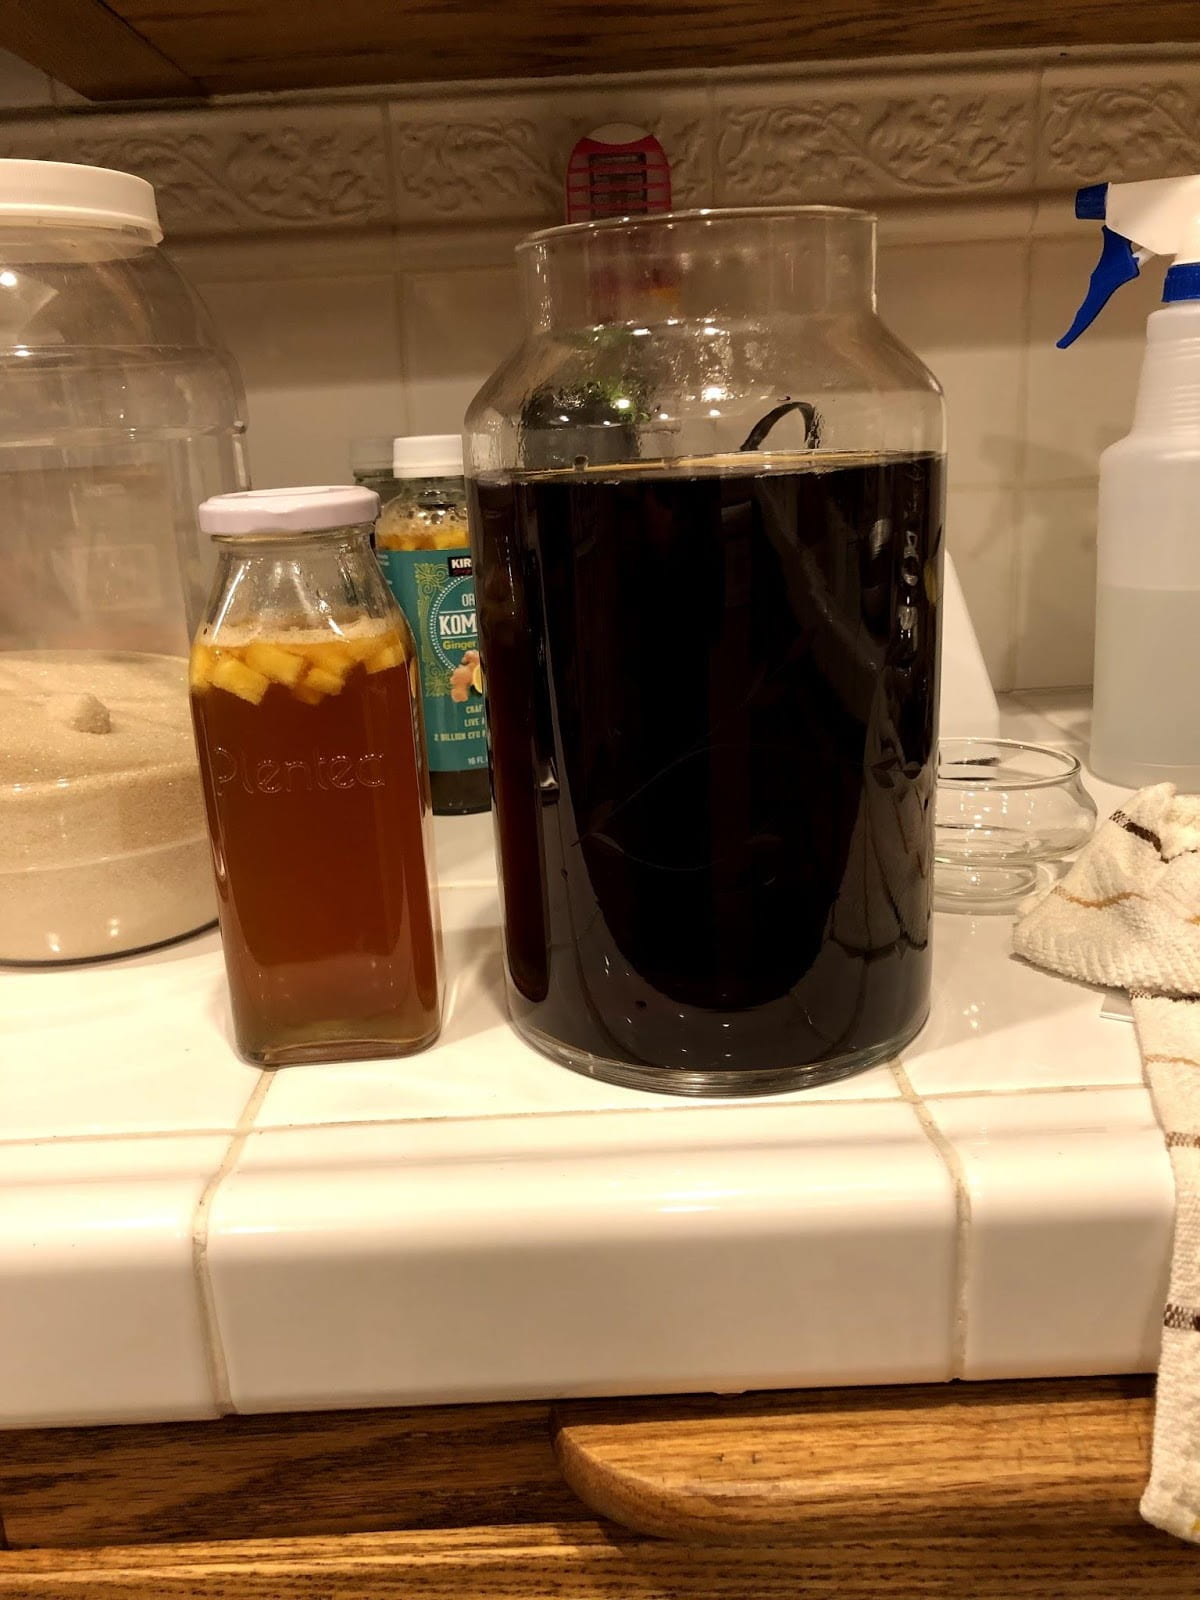 A glass and a pitcher of kombucha.